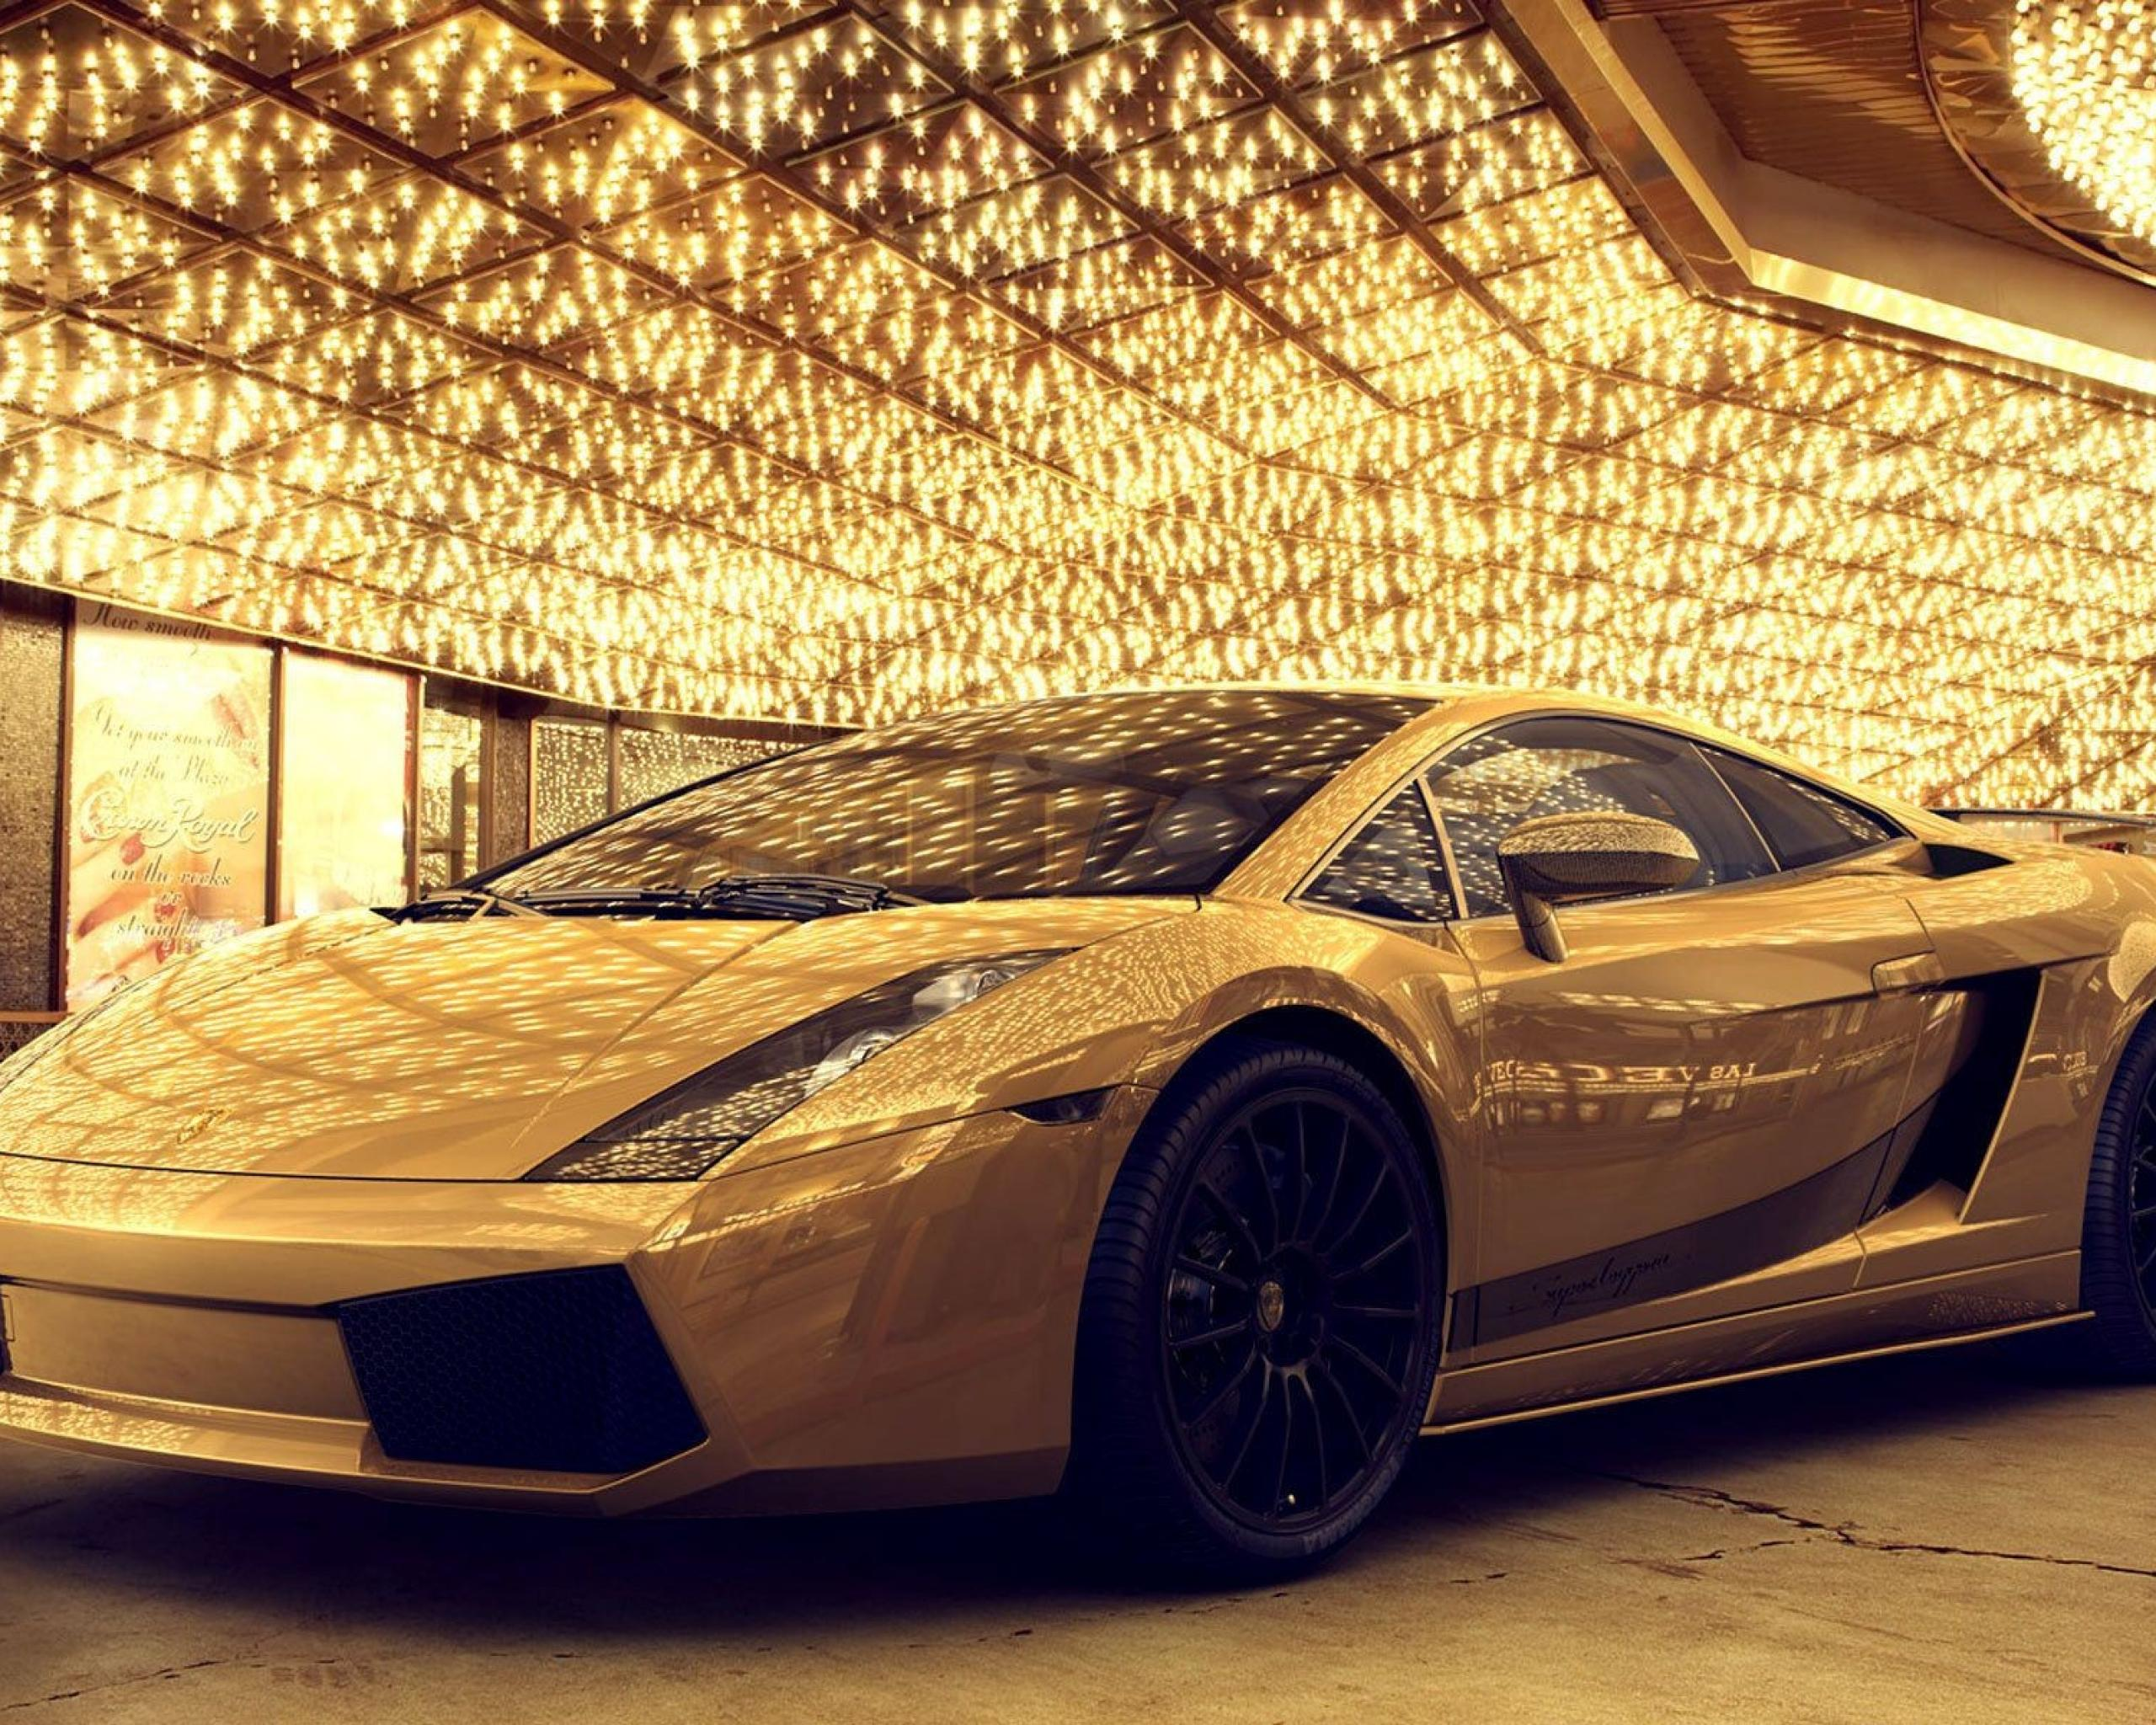 Cool Cars As Wallpaper What Chinese Shoppers Are Seeking In Luxury Brands